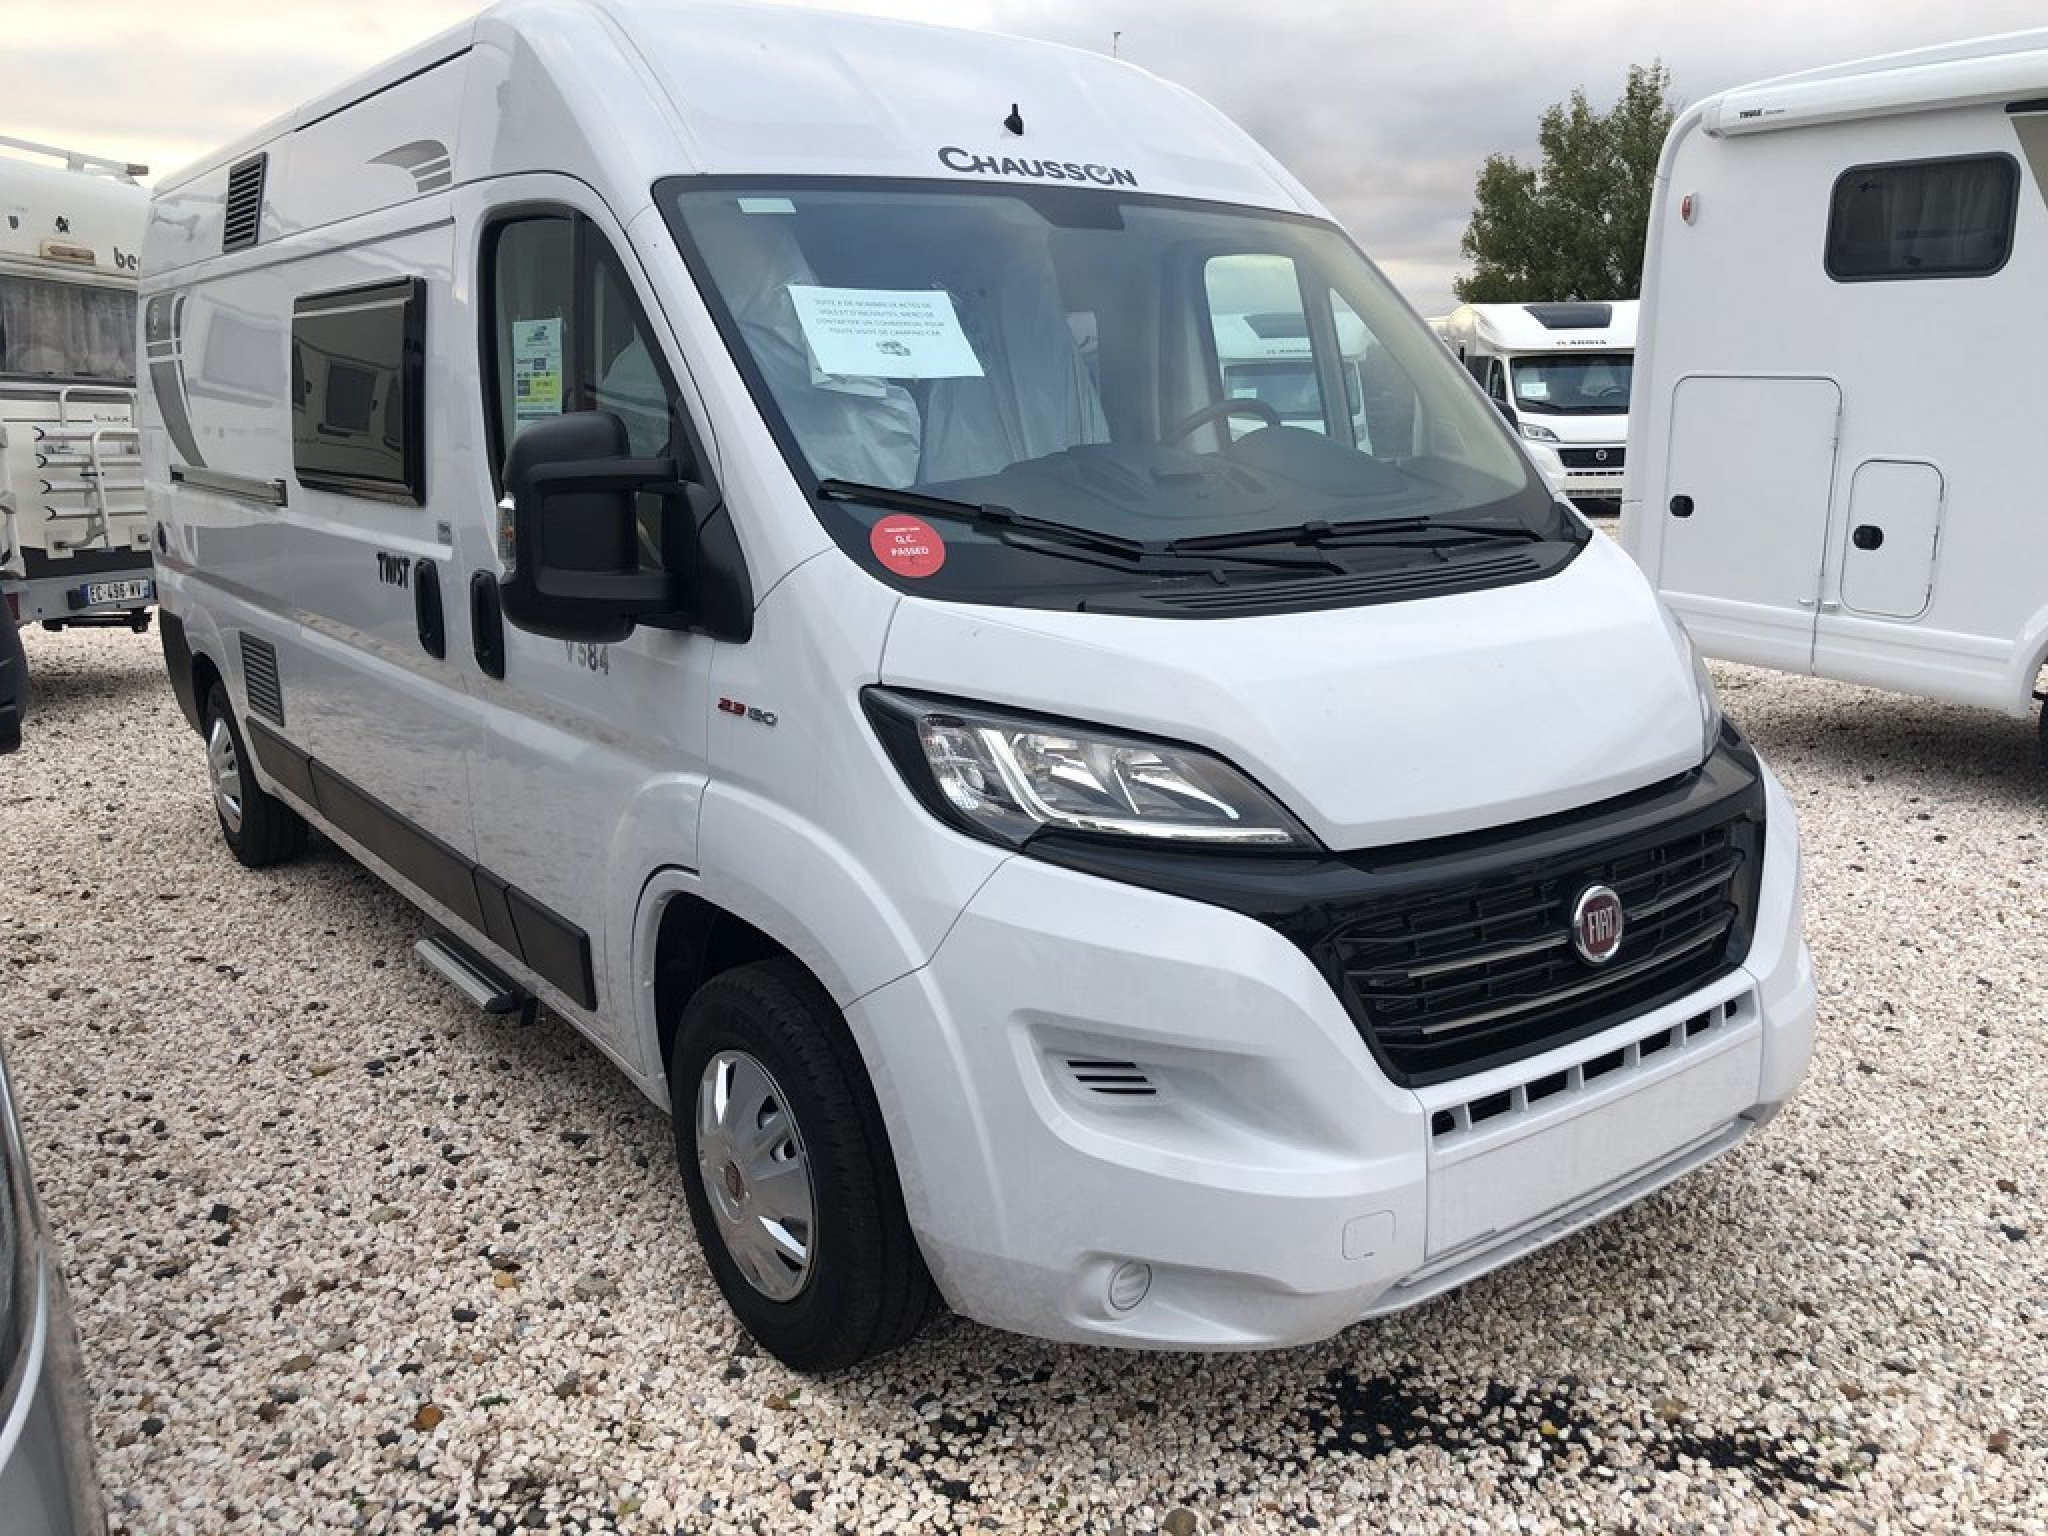 Camping-car CHAUSSON TWIST V 584